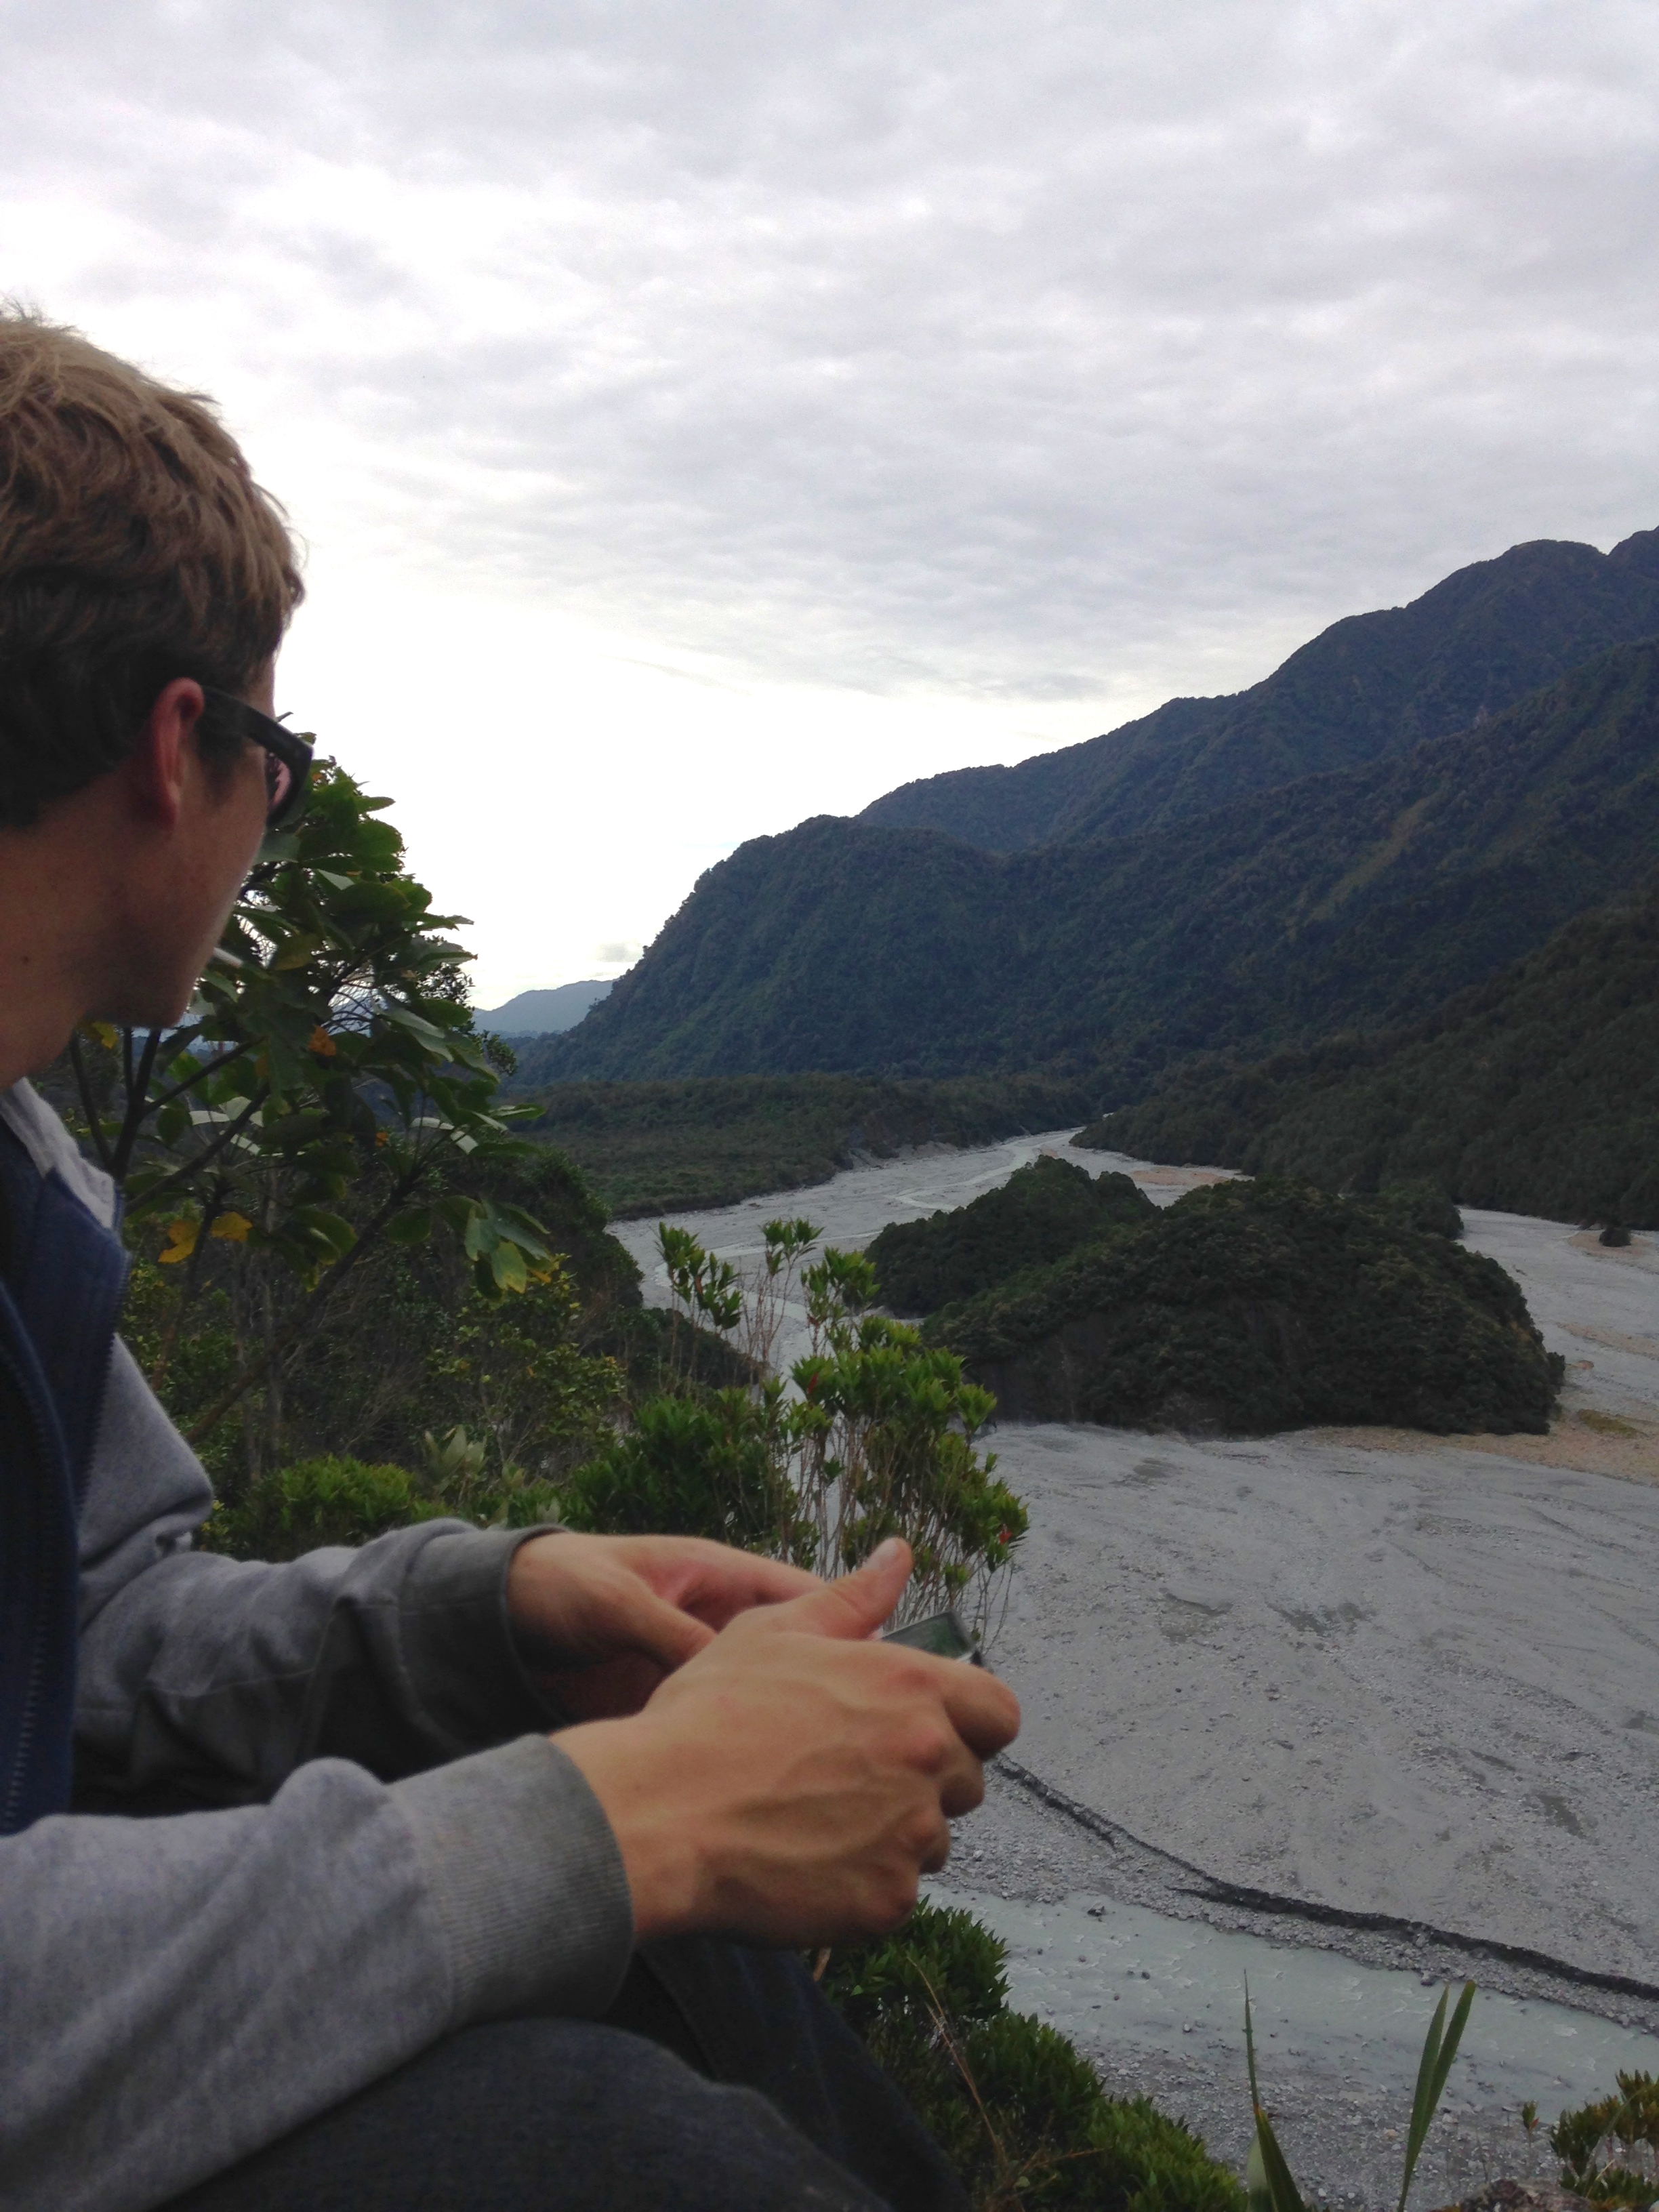 Julius and I went for a steep sketchy bush climb up the side of a waterfall just above the Franz Joseph glacier track. It was a laugh, and probably quite dangerous. The only other folks who had been there before us were bush pigs and possums.